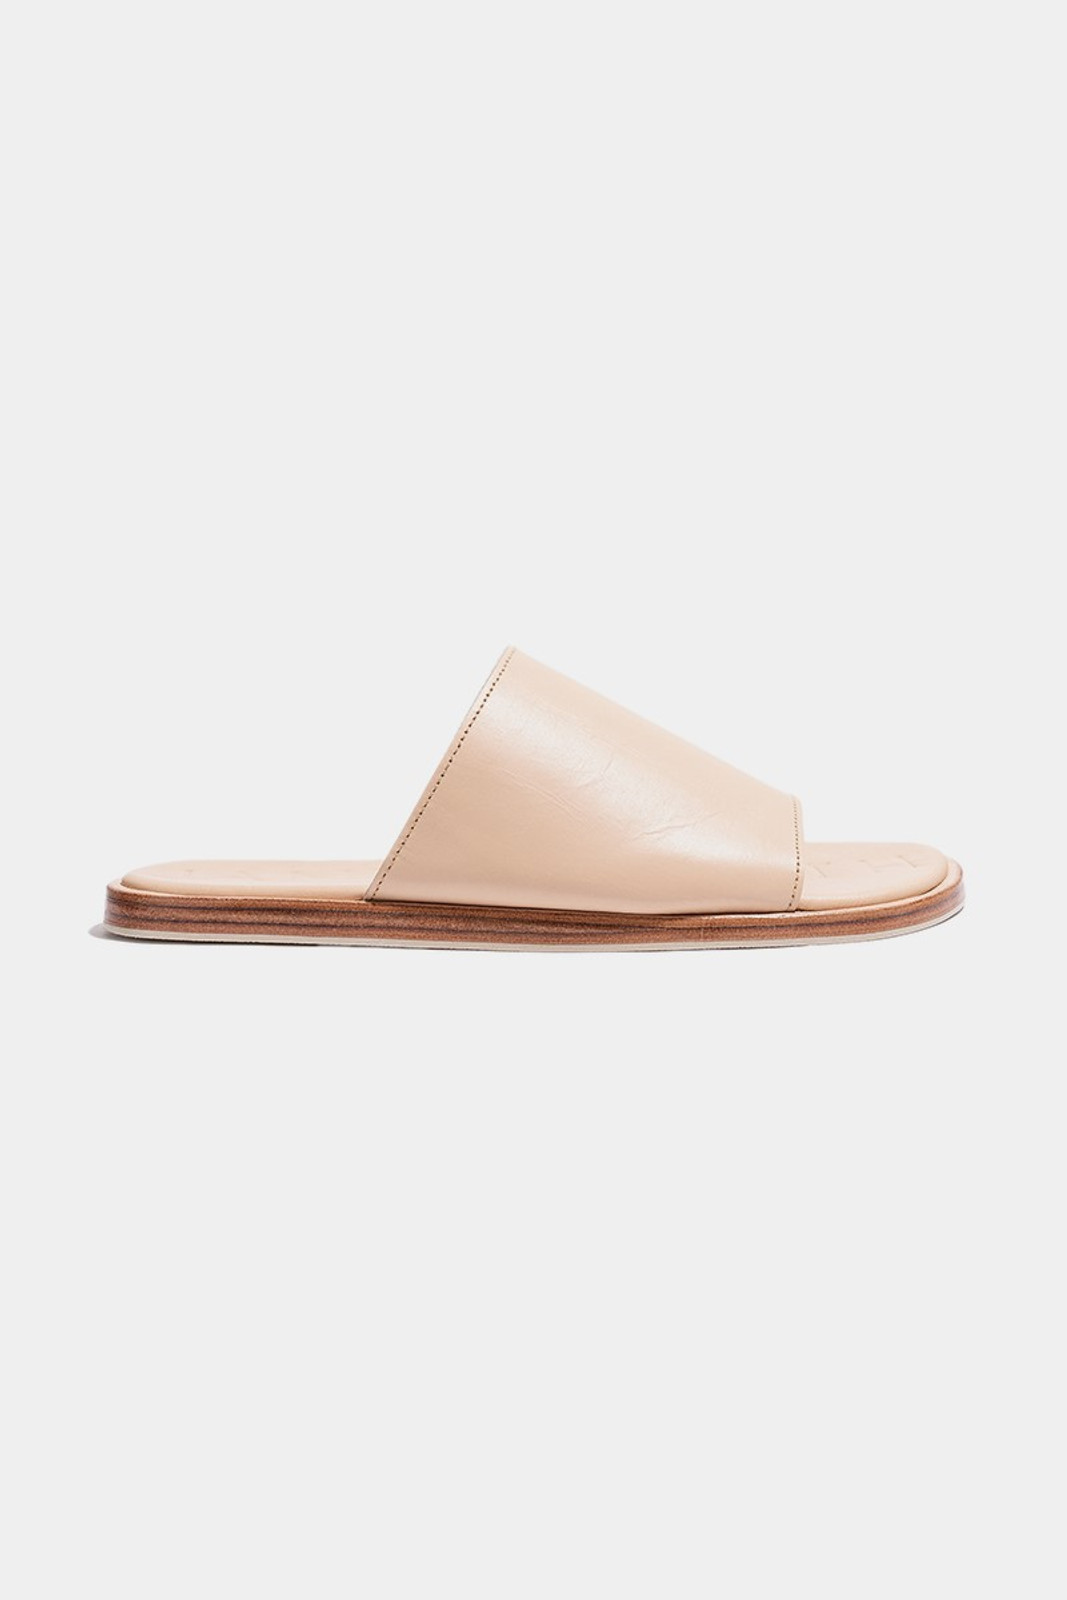 Elka Collective  Neutrals JAMES SMITH SLIDES OFF DUTY 8